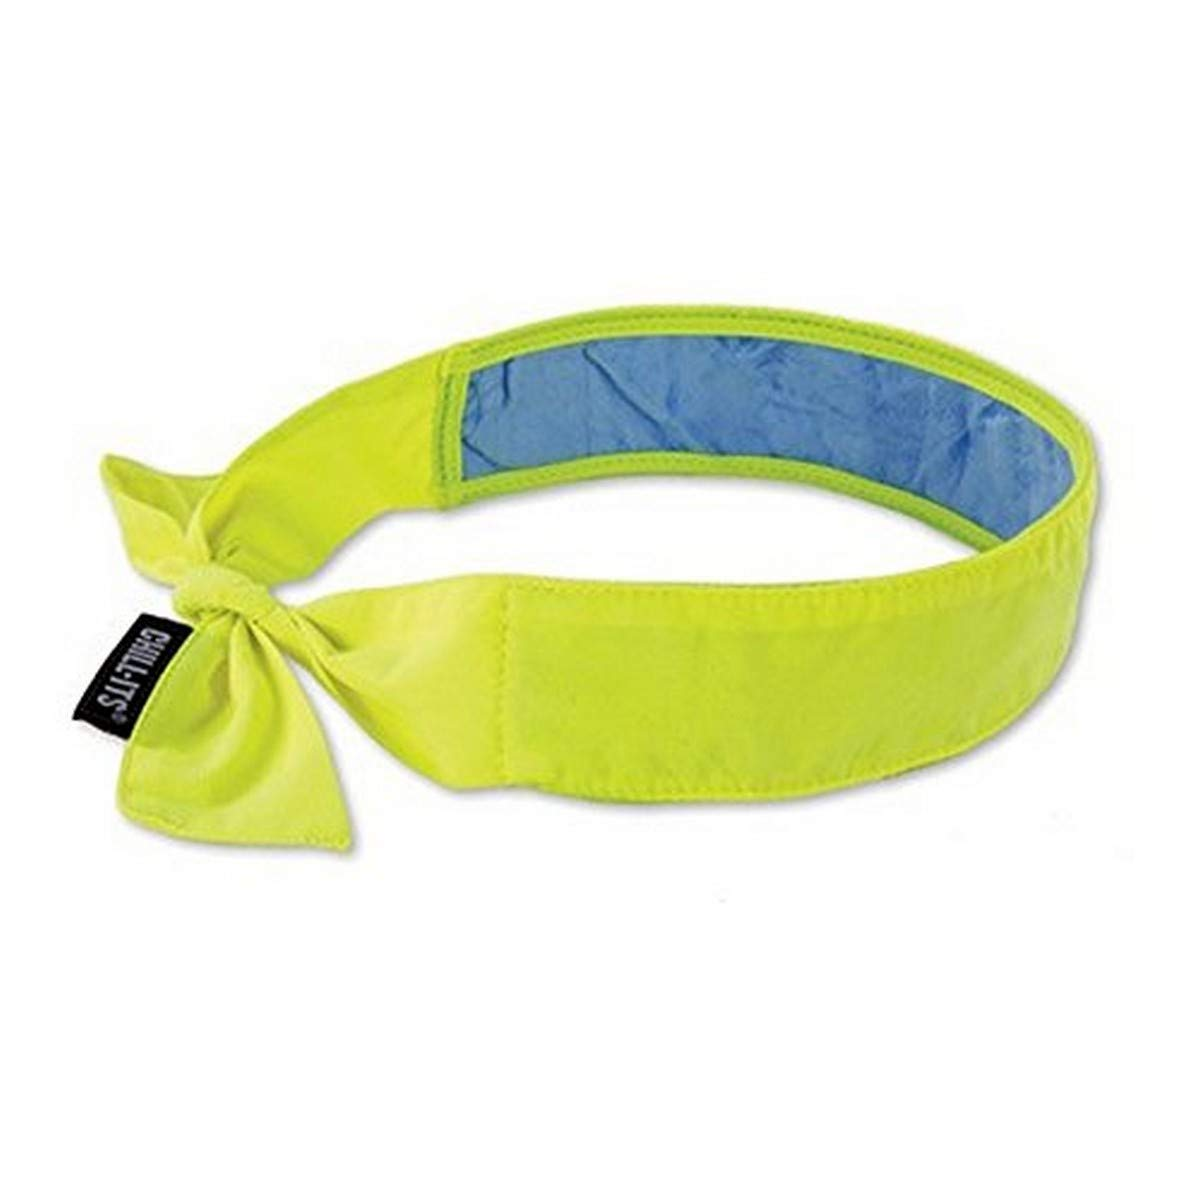 Ergodyne 12566 Chill-Its Evaporative Cooling Bandana, Standard, Hi/Vis Lime